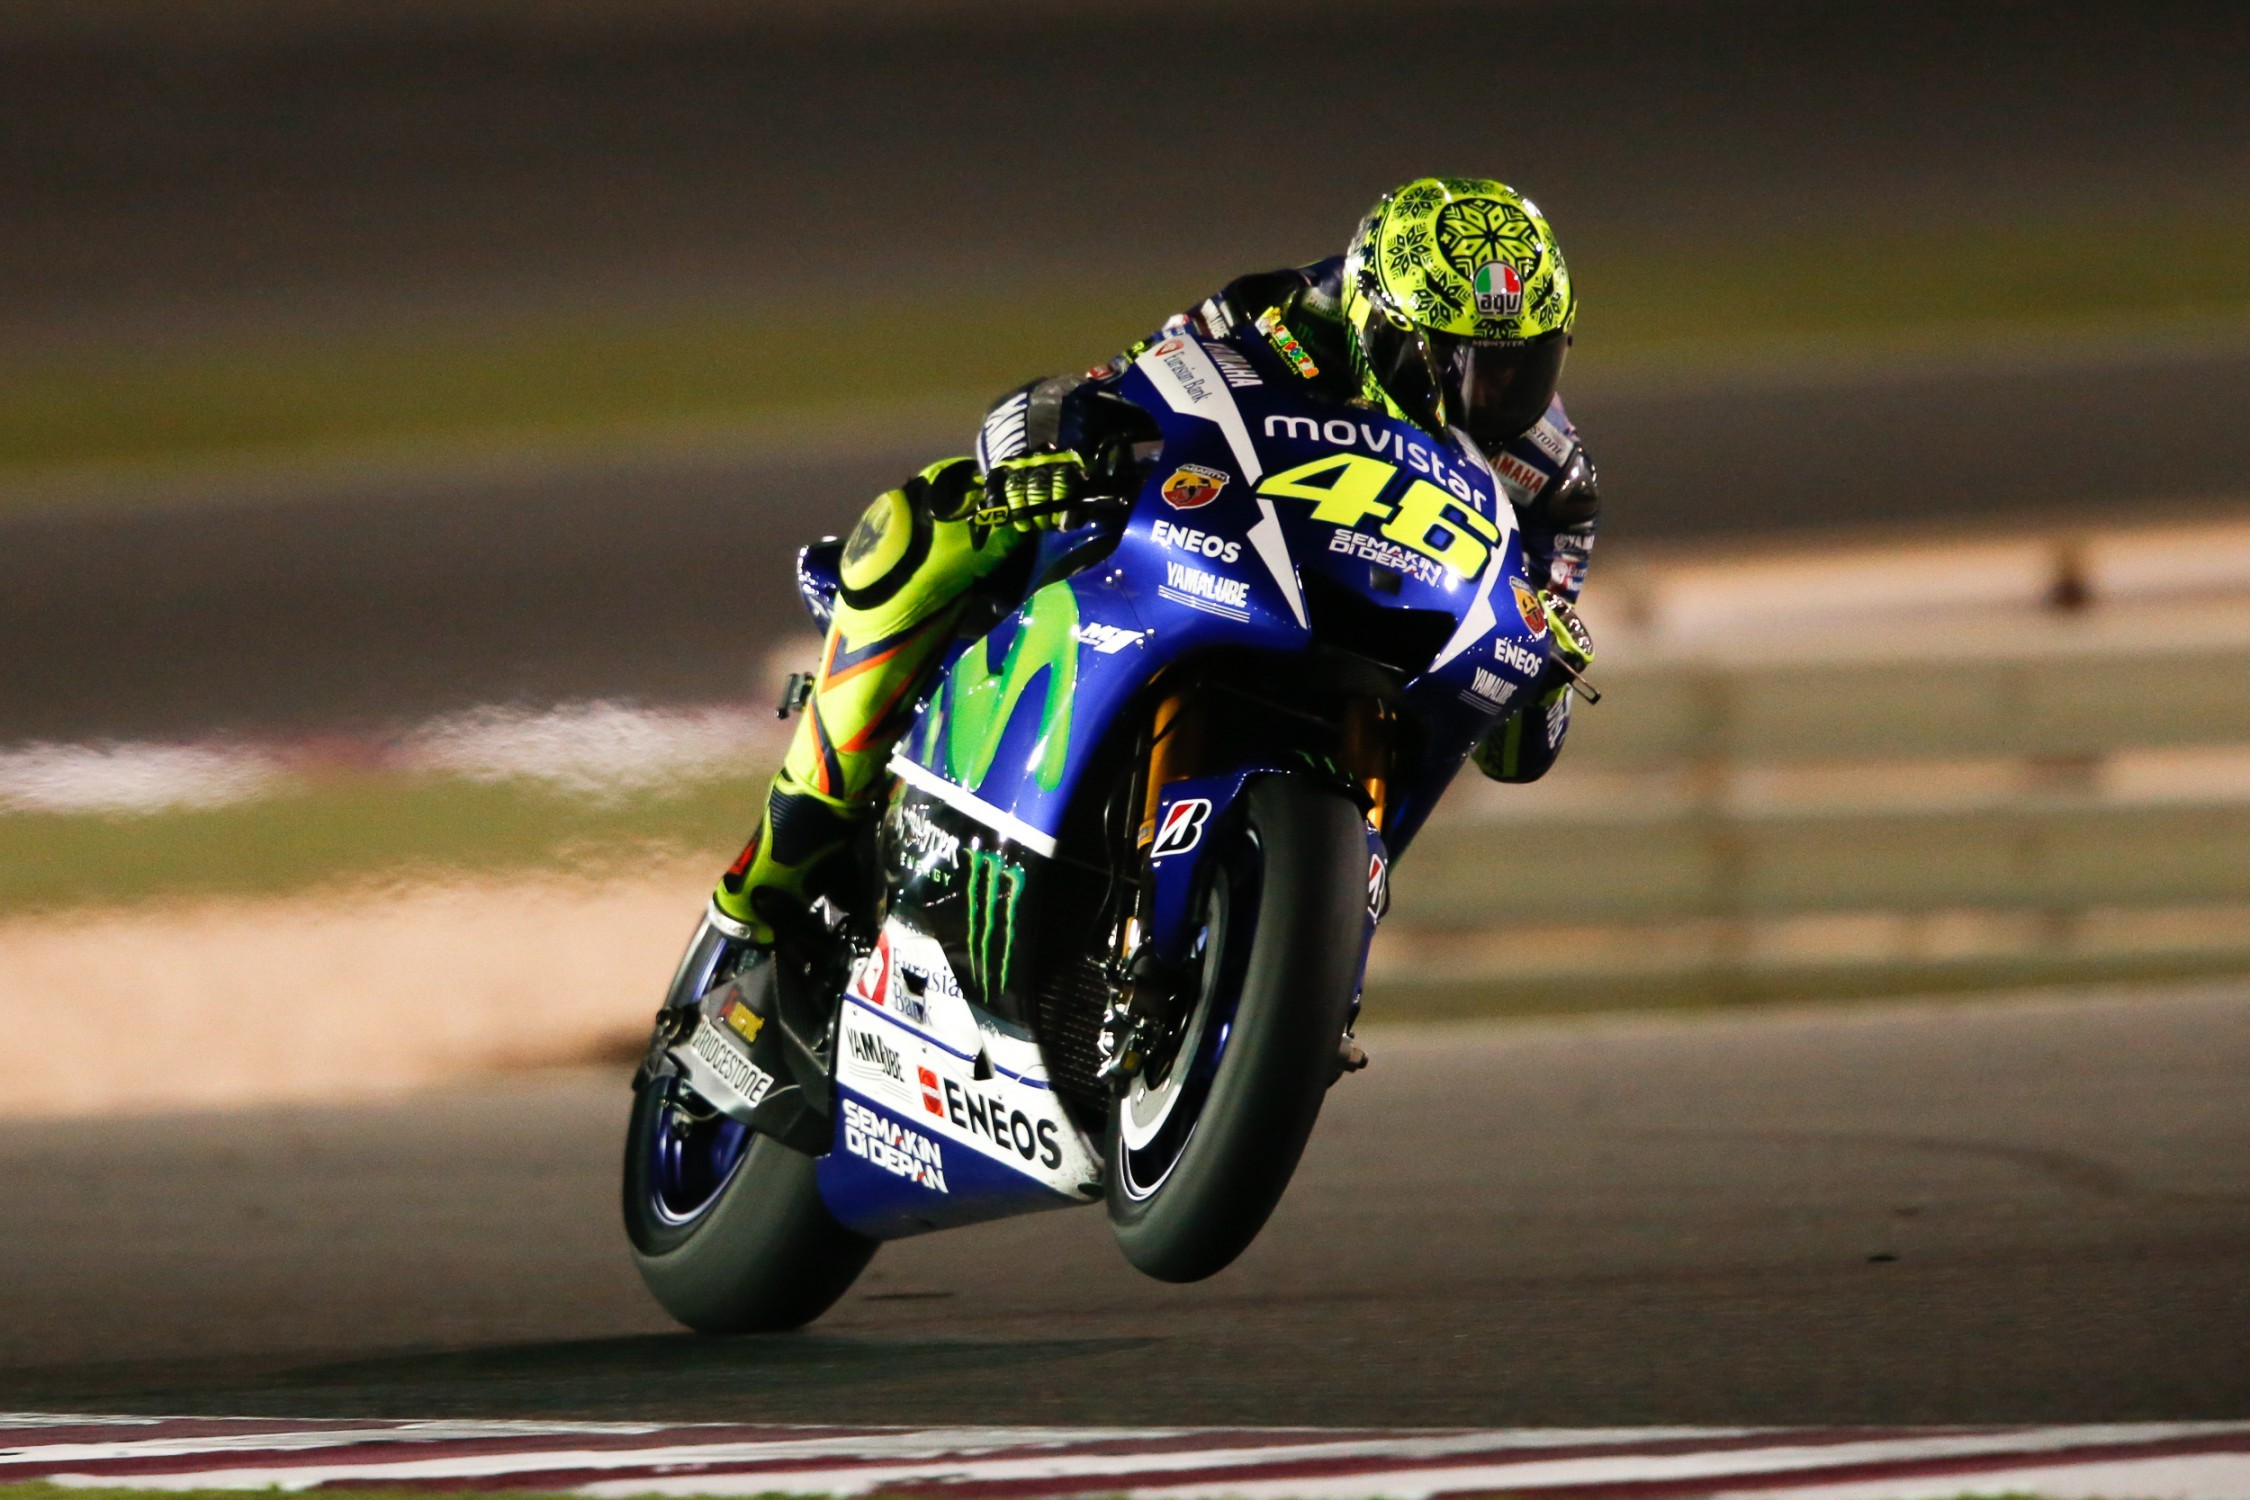 valentino rossi rumored to race at the suzuka 8 hours against casey stoner autoevolution. Black Bedroom Furniture Sets. Home Design Ideas